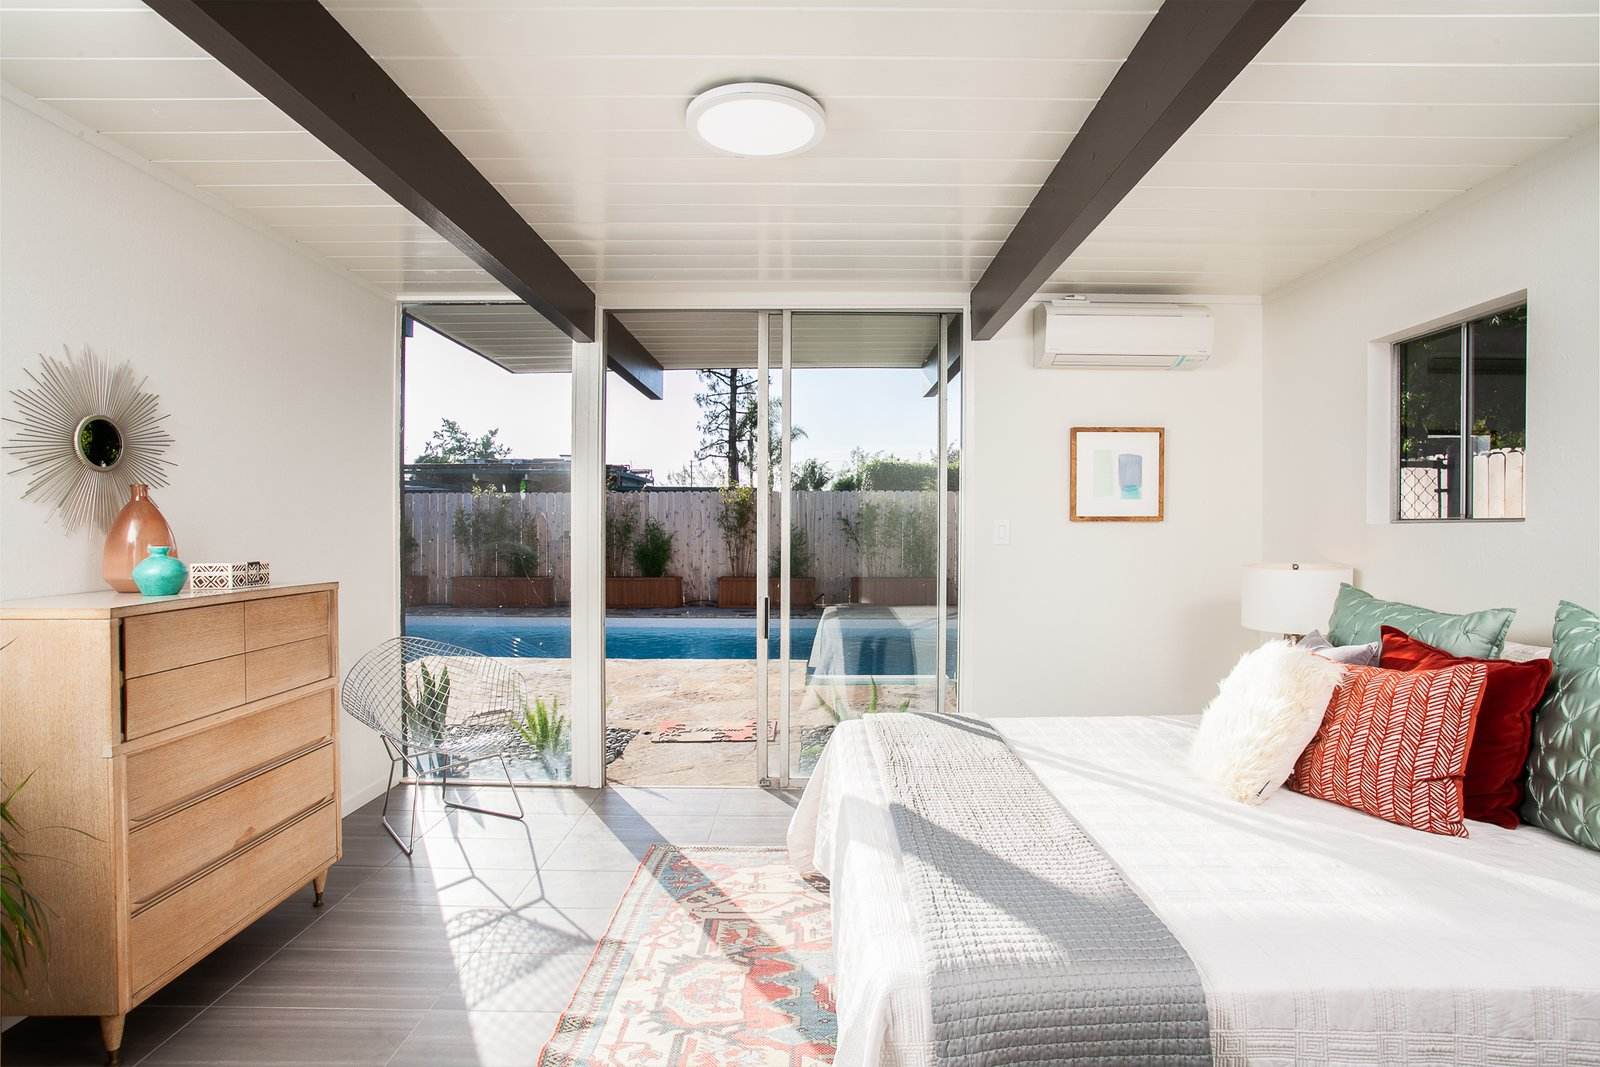 Bedroom, Table, Night Stands, Ceiling, Dresser, and Bed The master bedroom features sliding glass doors which provide direct access to the backyard pool.  Best Bedroom Bed Night Stands Dresser Ceiling Photos from A Spacious and Stylish Orange County Eichler With a Pool Seeks $1.25M